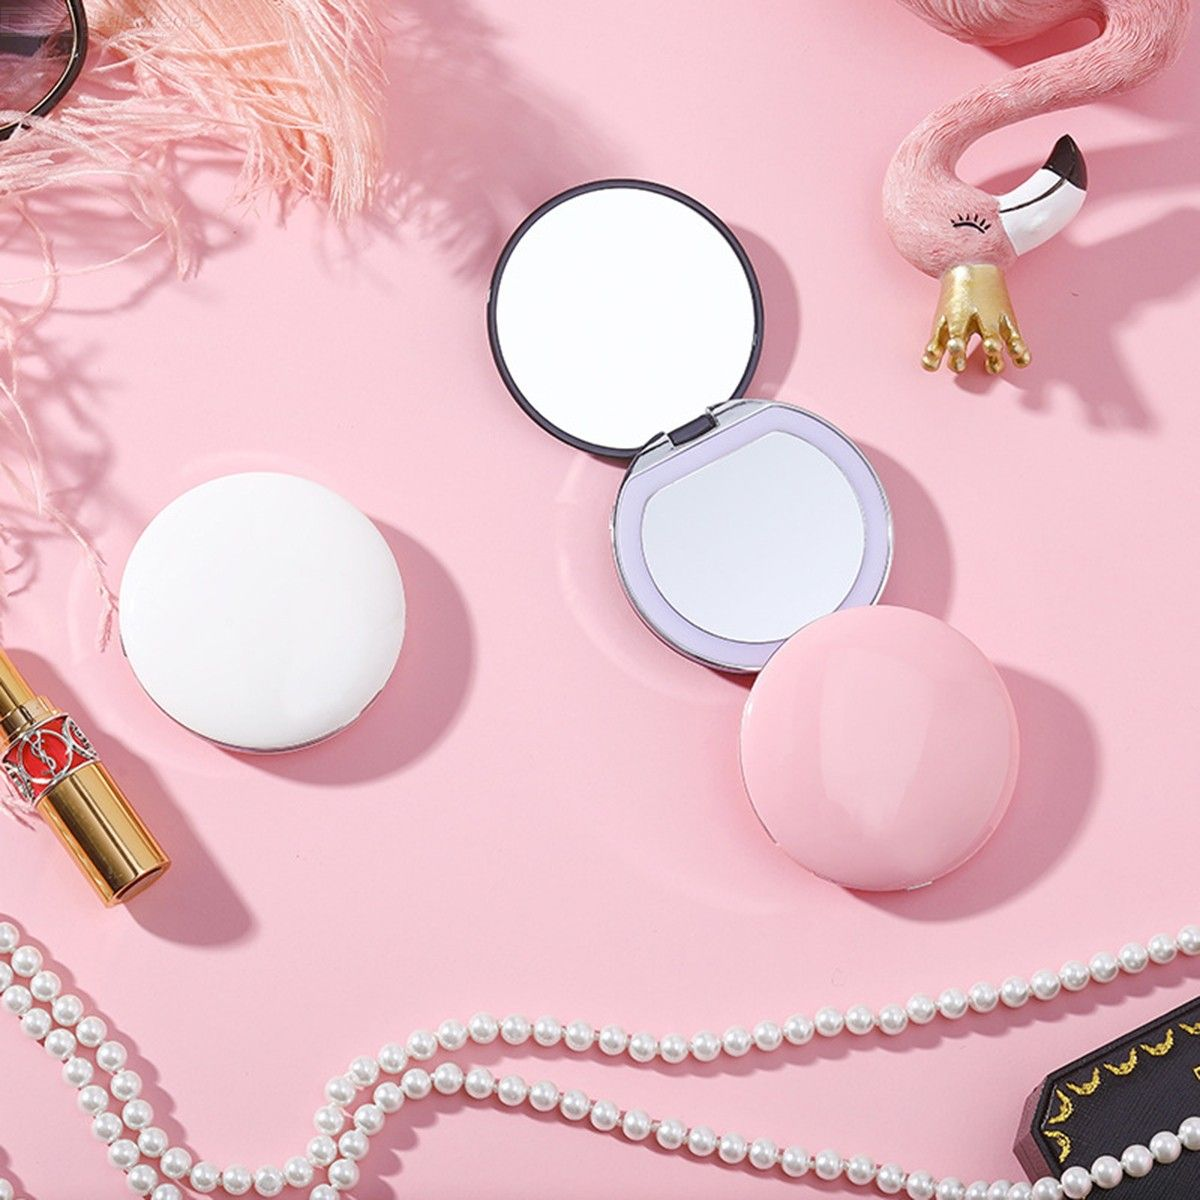 Mini Portable USB Rechargeable LED Makeup Mirror With Light For Travel